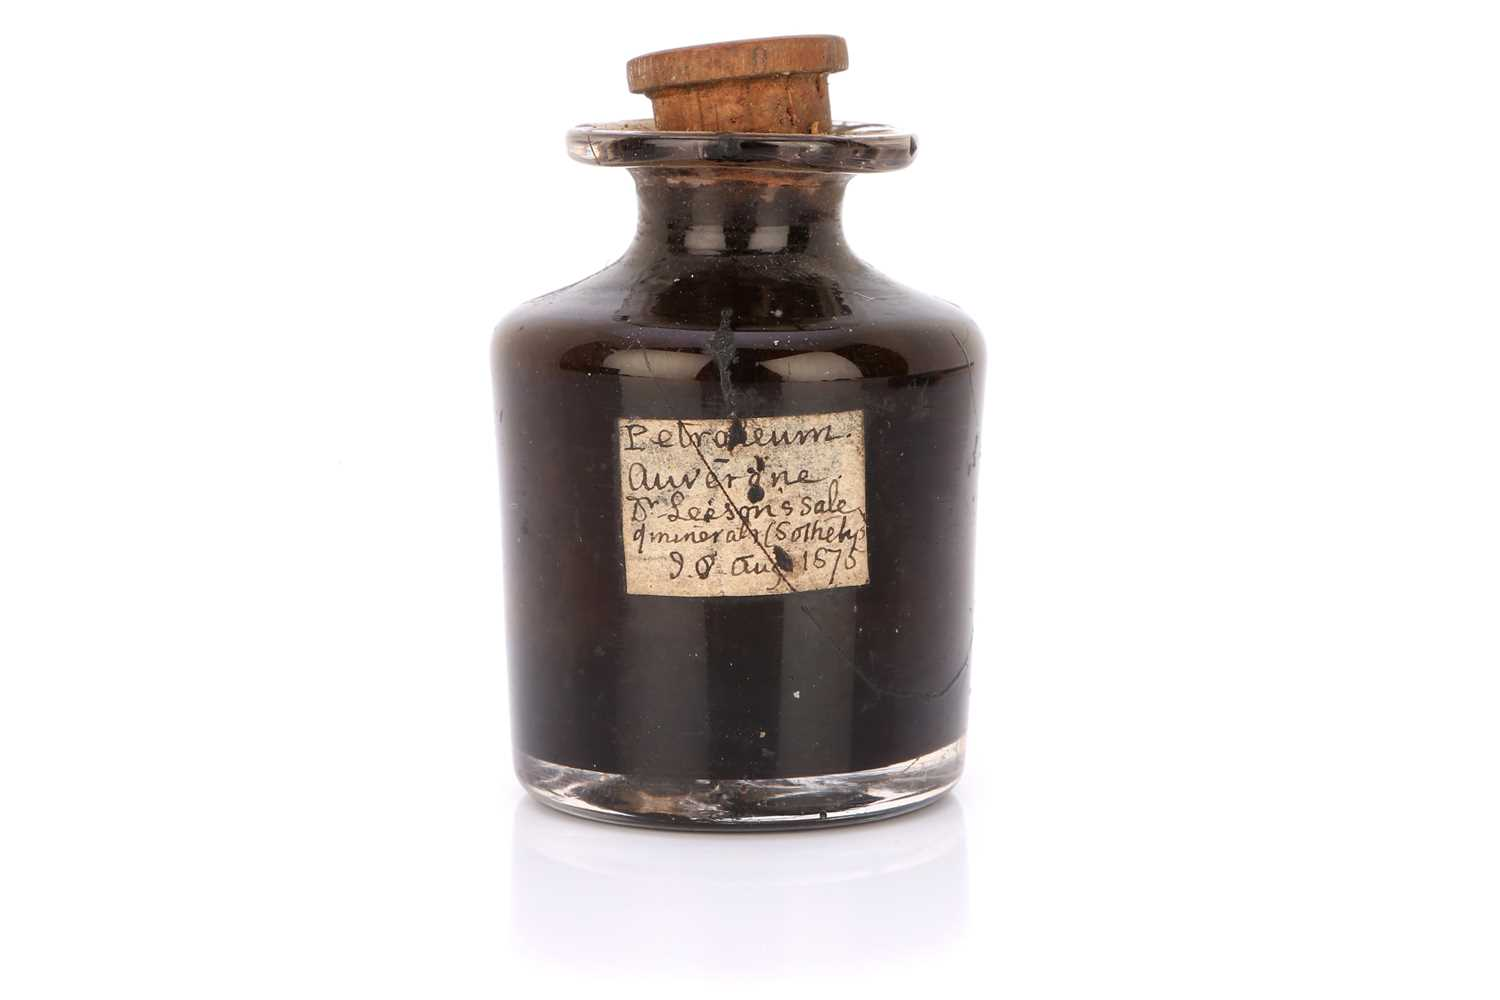 Lot 42-An Unusual Bottle of Petroleum from an 1875 Sotheby's Sale